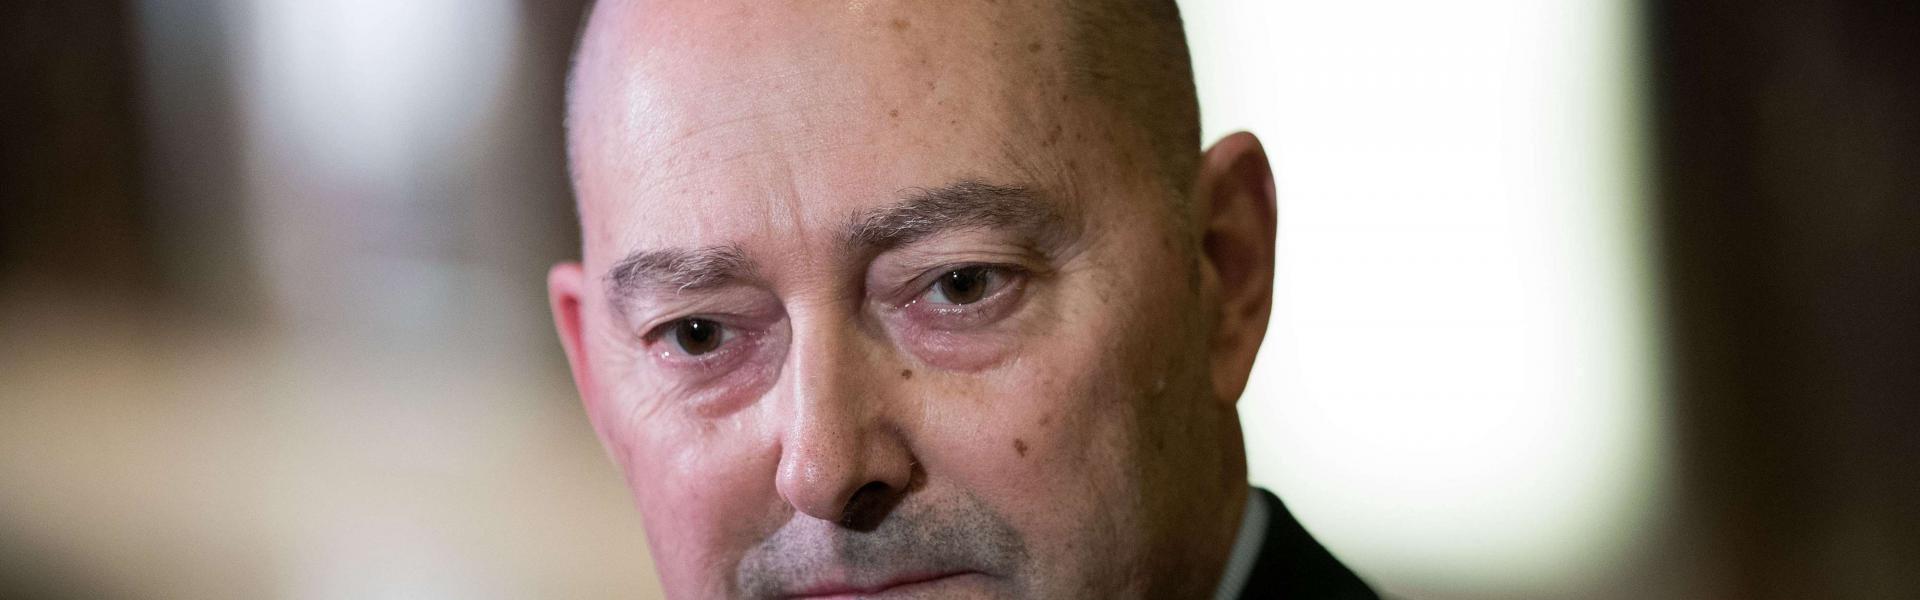 James 'Jim' Stavridis, retired U.S. Navy admiral and the current dean of the Fletcher School of Law and Diplomacy at Tufts University, speaks to reporters at Trump Tower, December 8, 2016 in New York City. Drew Angerer/Getty Images/AFP